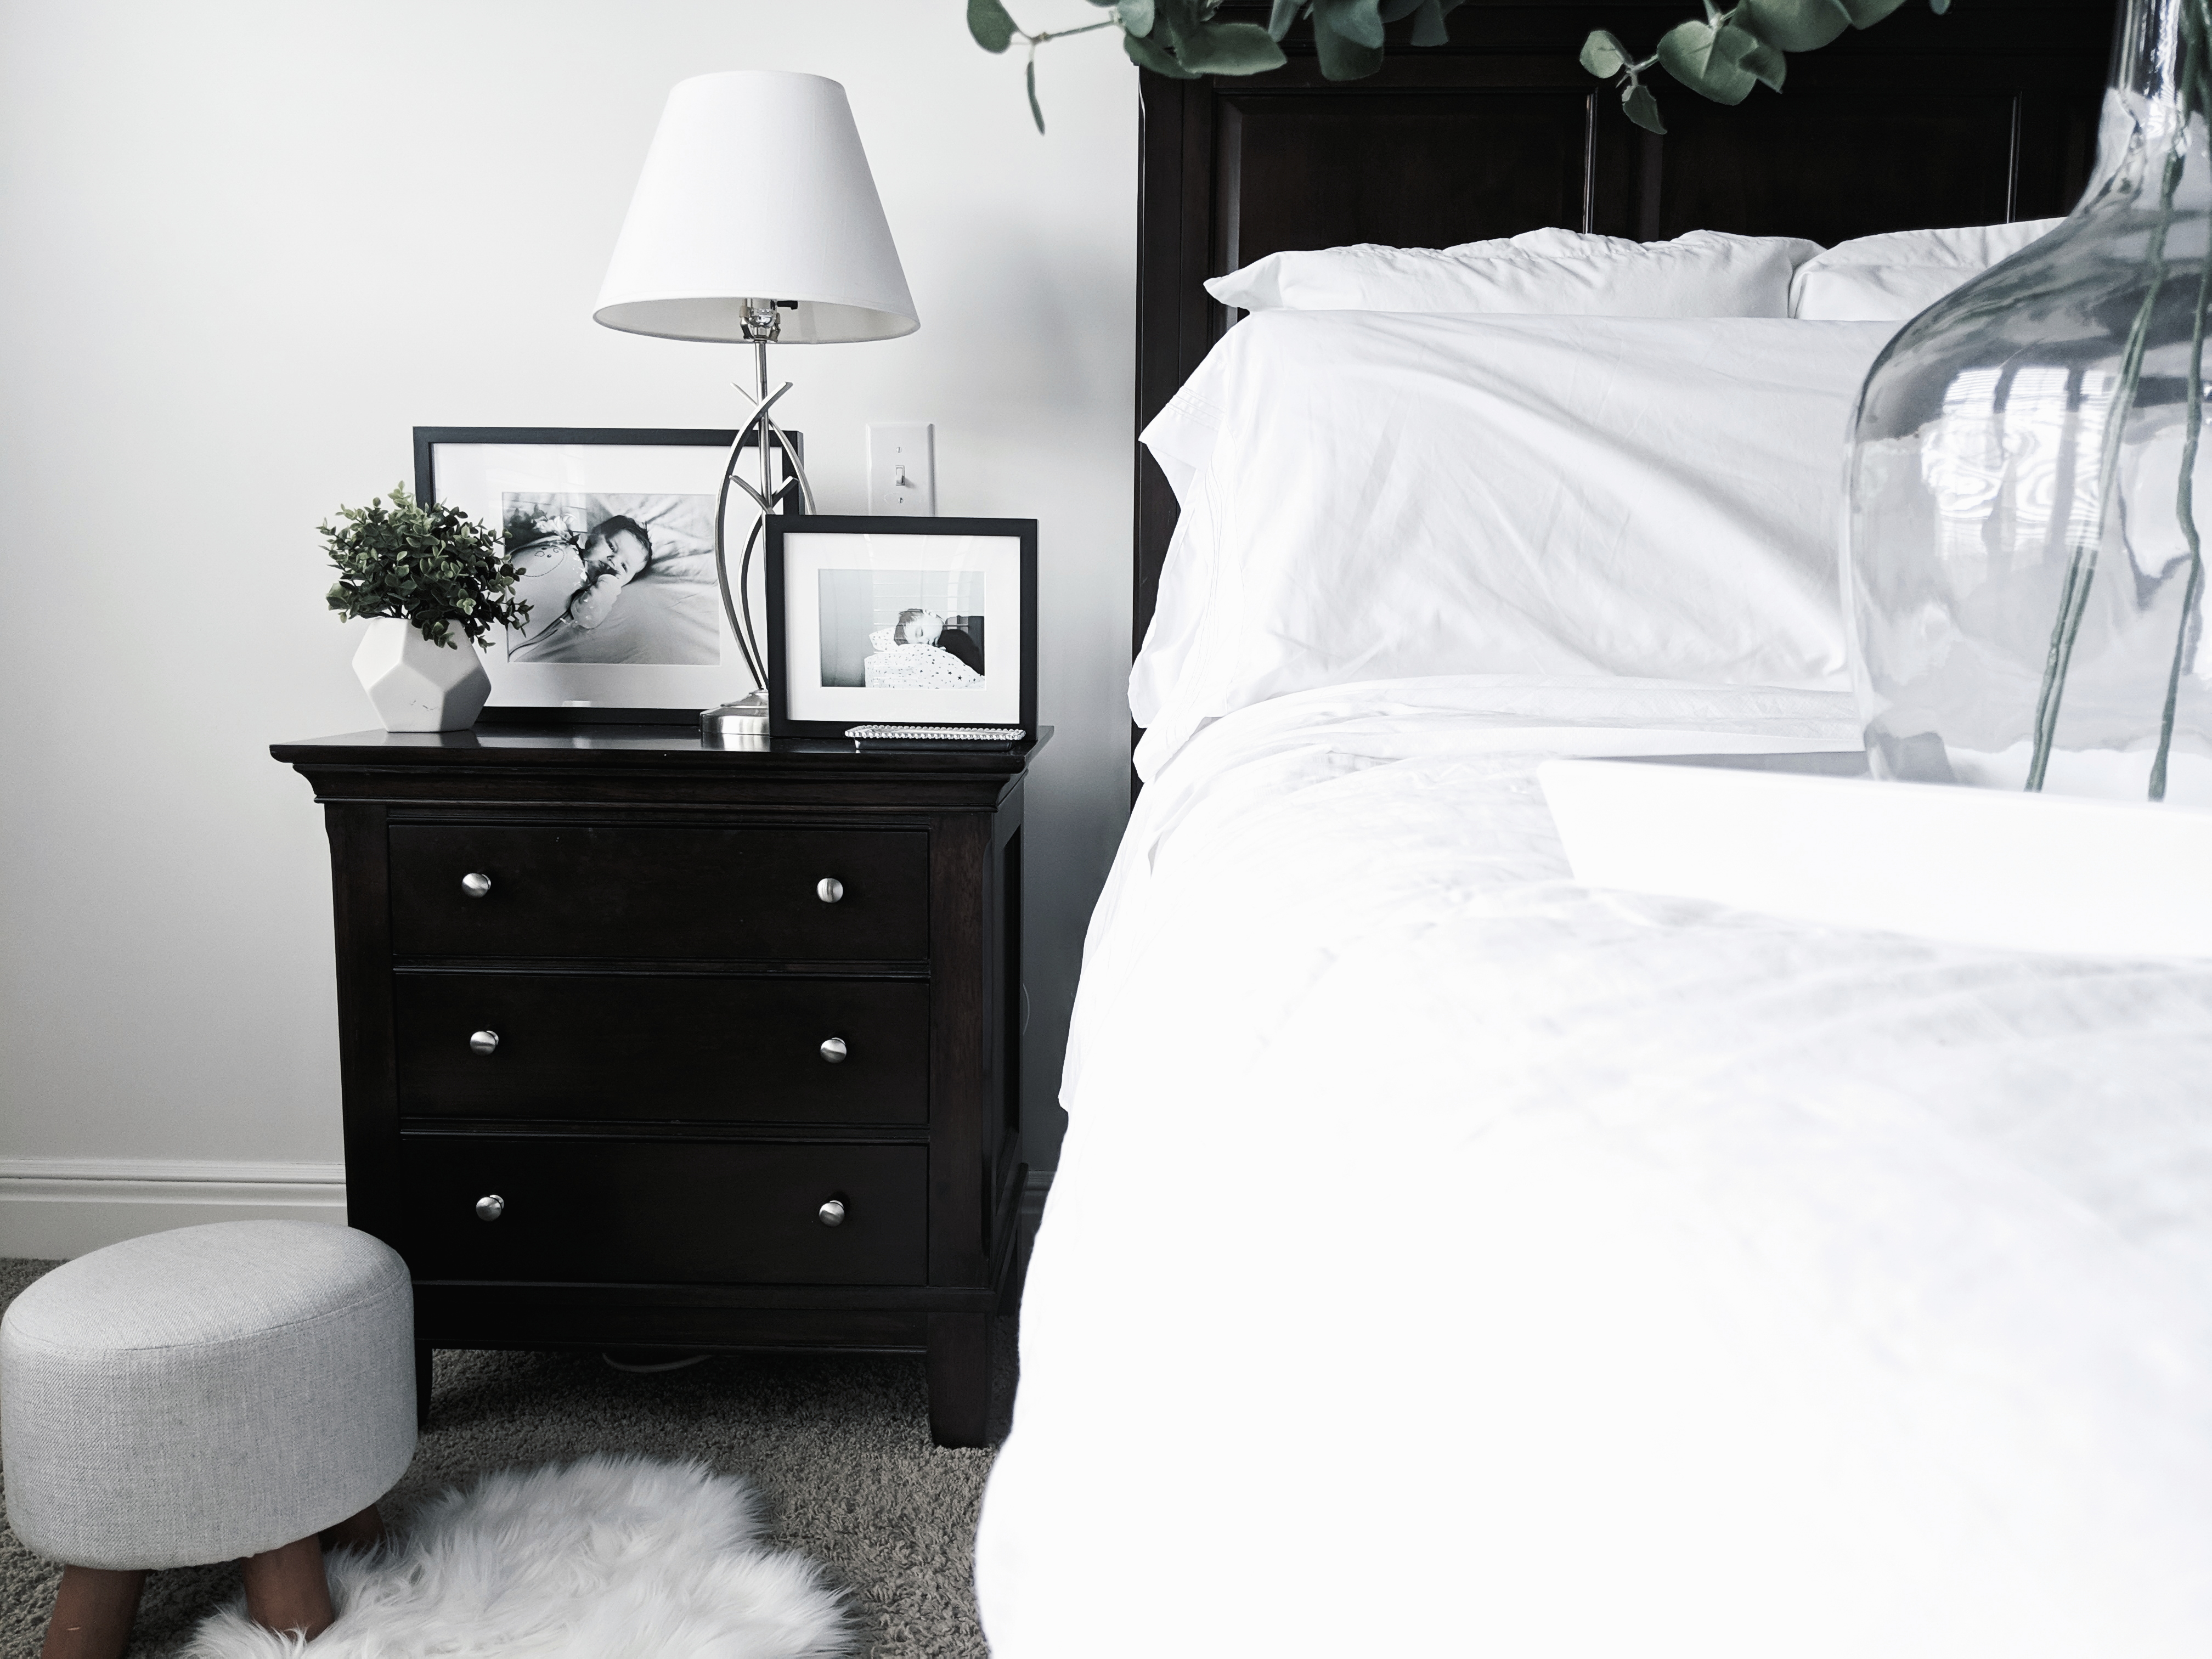 Black and White Master Bedroom Ideas: Inspiration for a monochrome master bedroom with classic black and white decor. Keep your bedroom sleek and modern with this chic black and white decor. The best part: all sources are affordable! Master bedroom inspo, master bedroom decor, white bedding, white bedroom. #MasterBedroom #HomeDecor #Modern #LTKhome